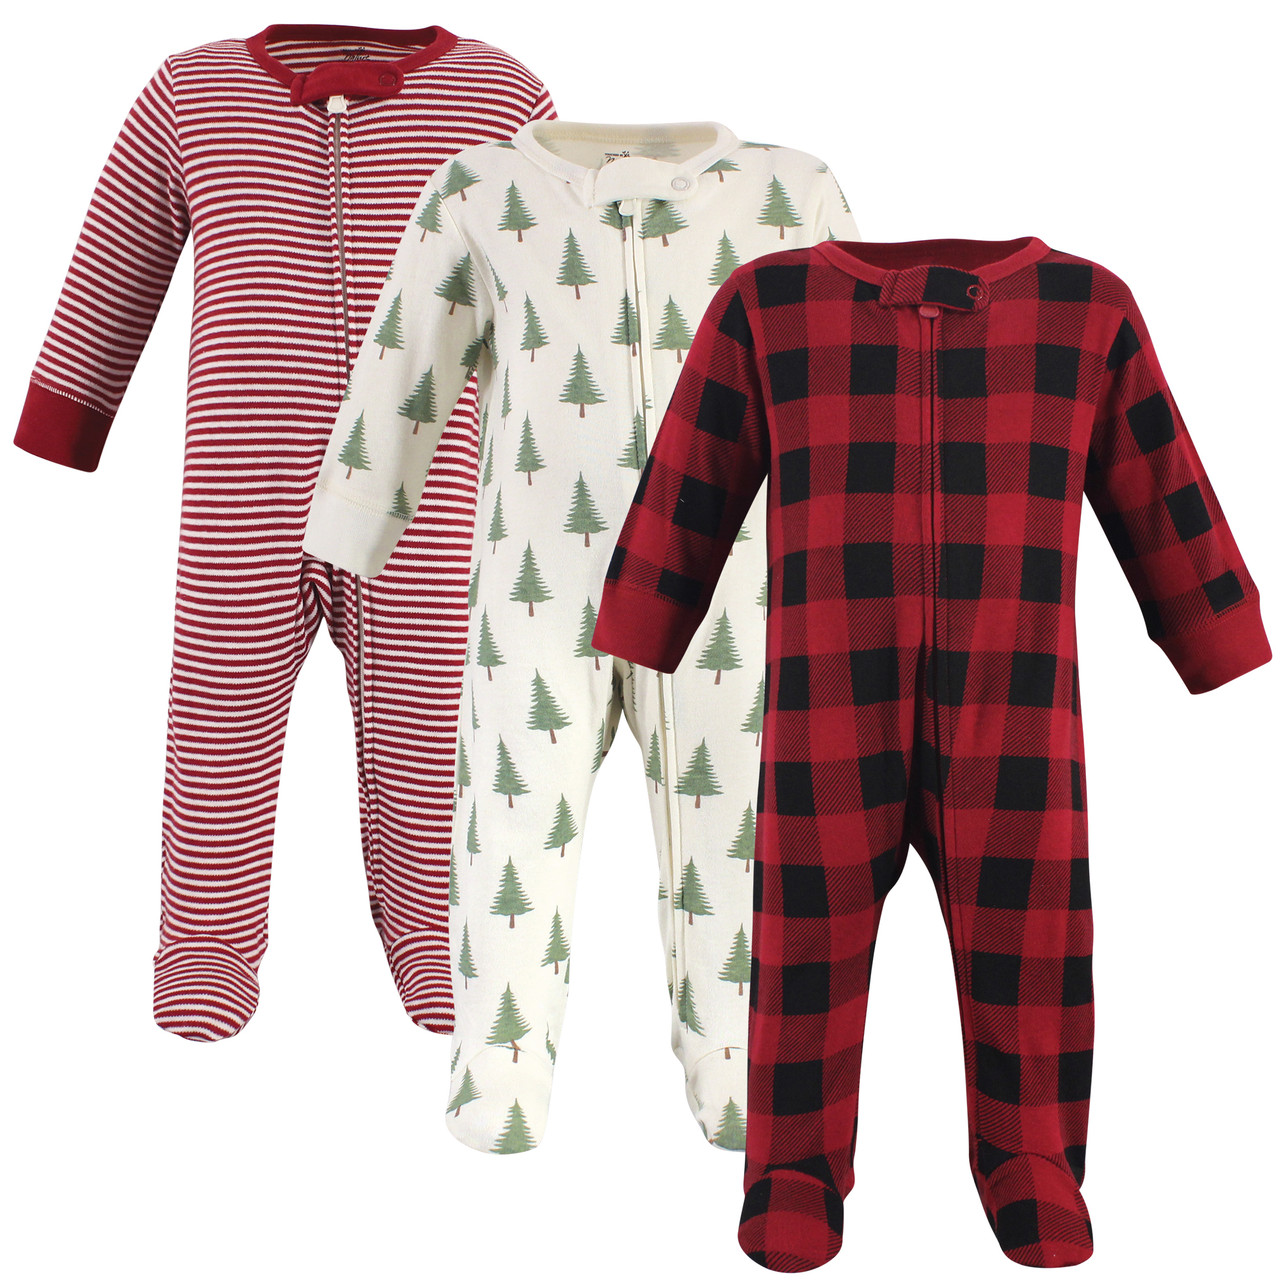 Touched by Nature Organic Cotton Sleep and Play 3-Pack Elephant